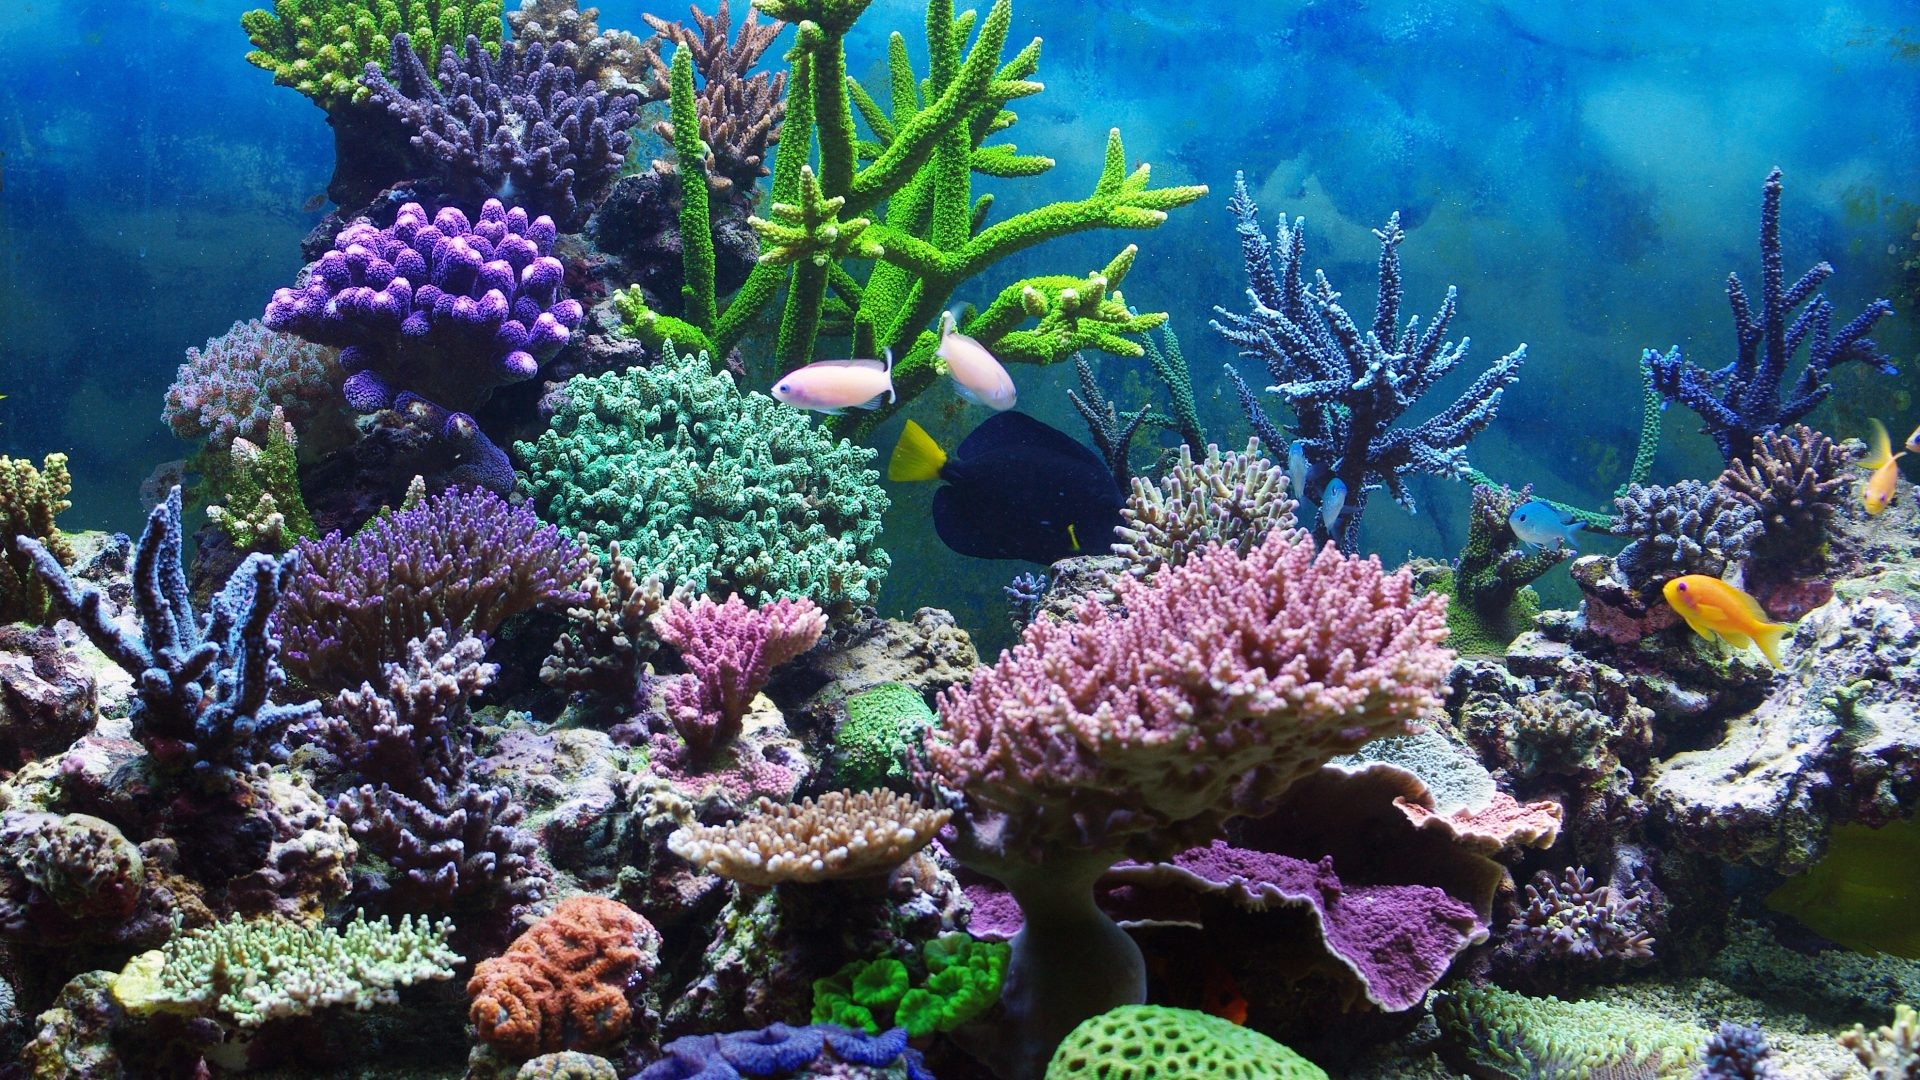 Coral Reef Wallpapers (62+ images)